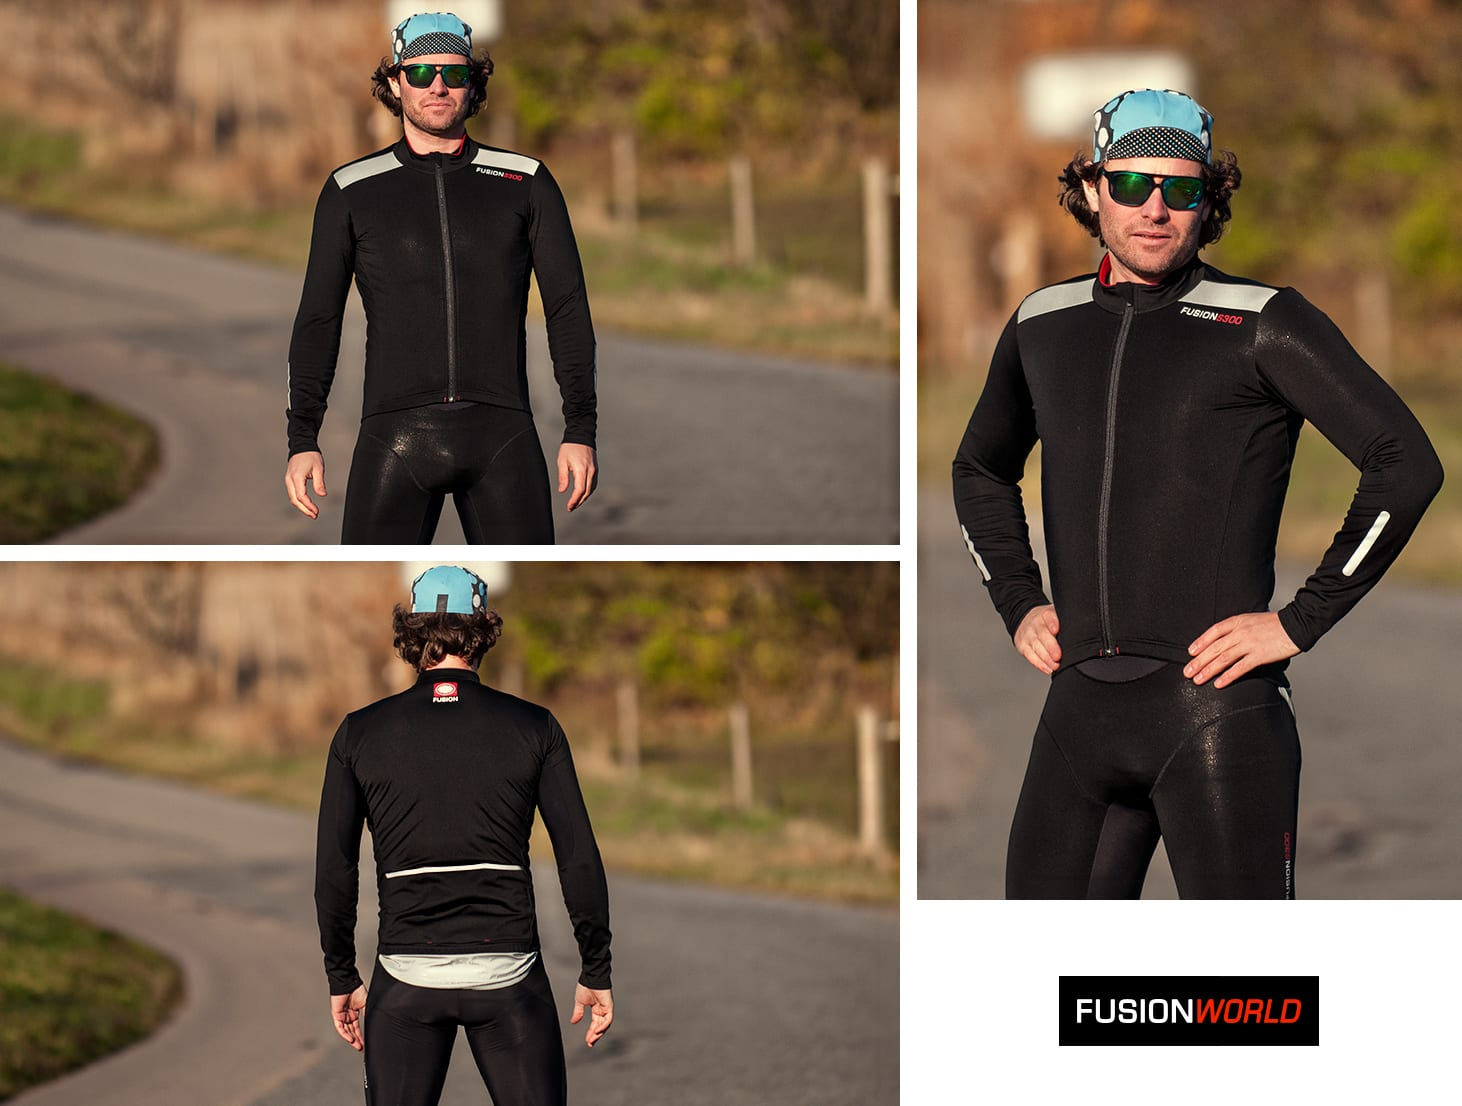 Fusion World Jacket Test AltomCykling.dk